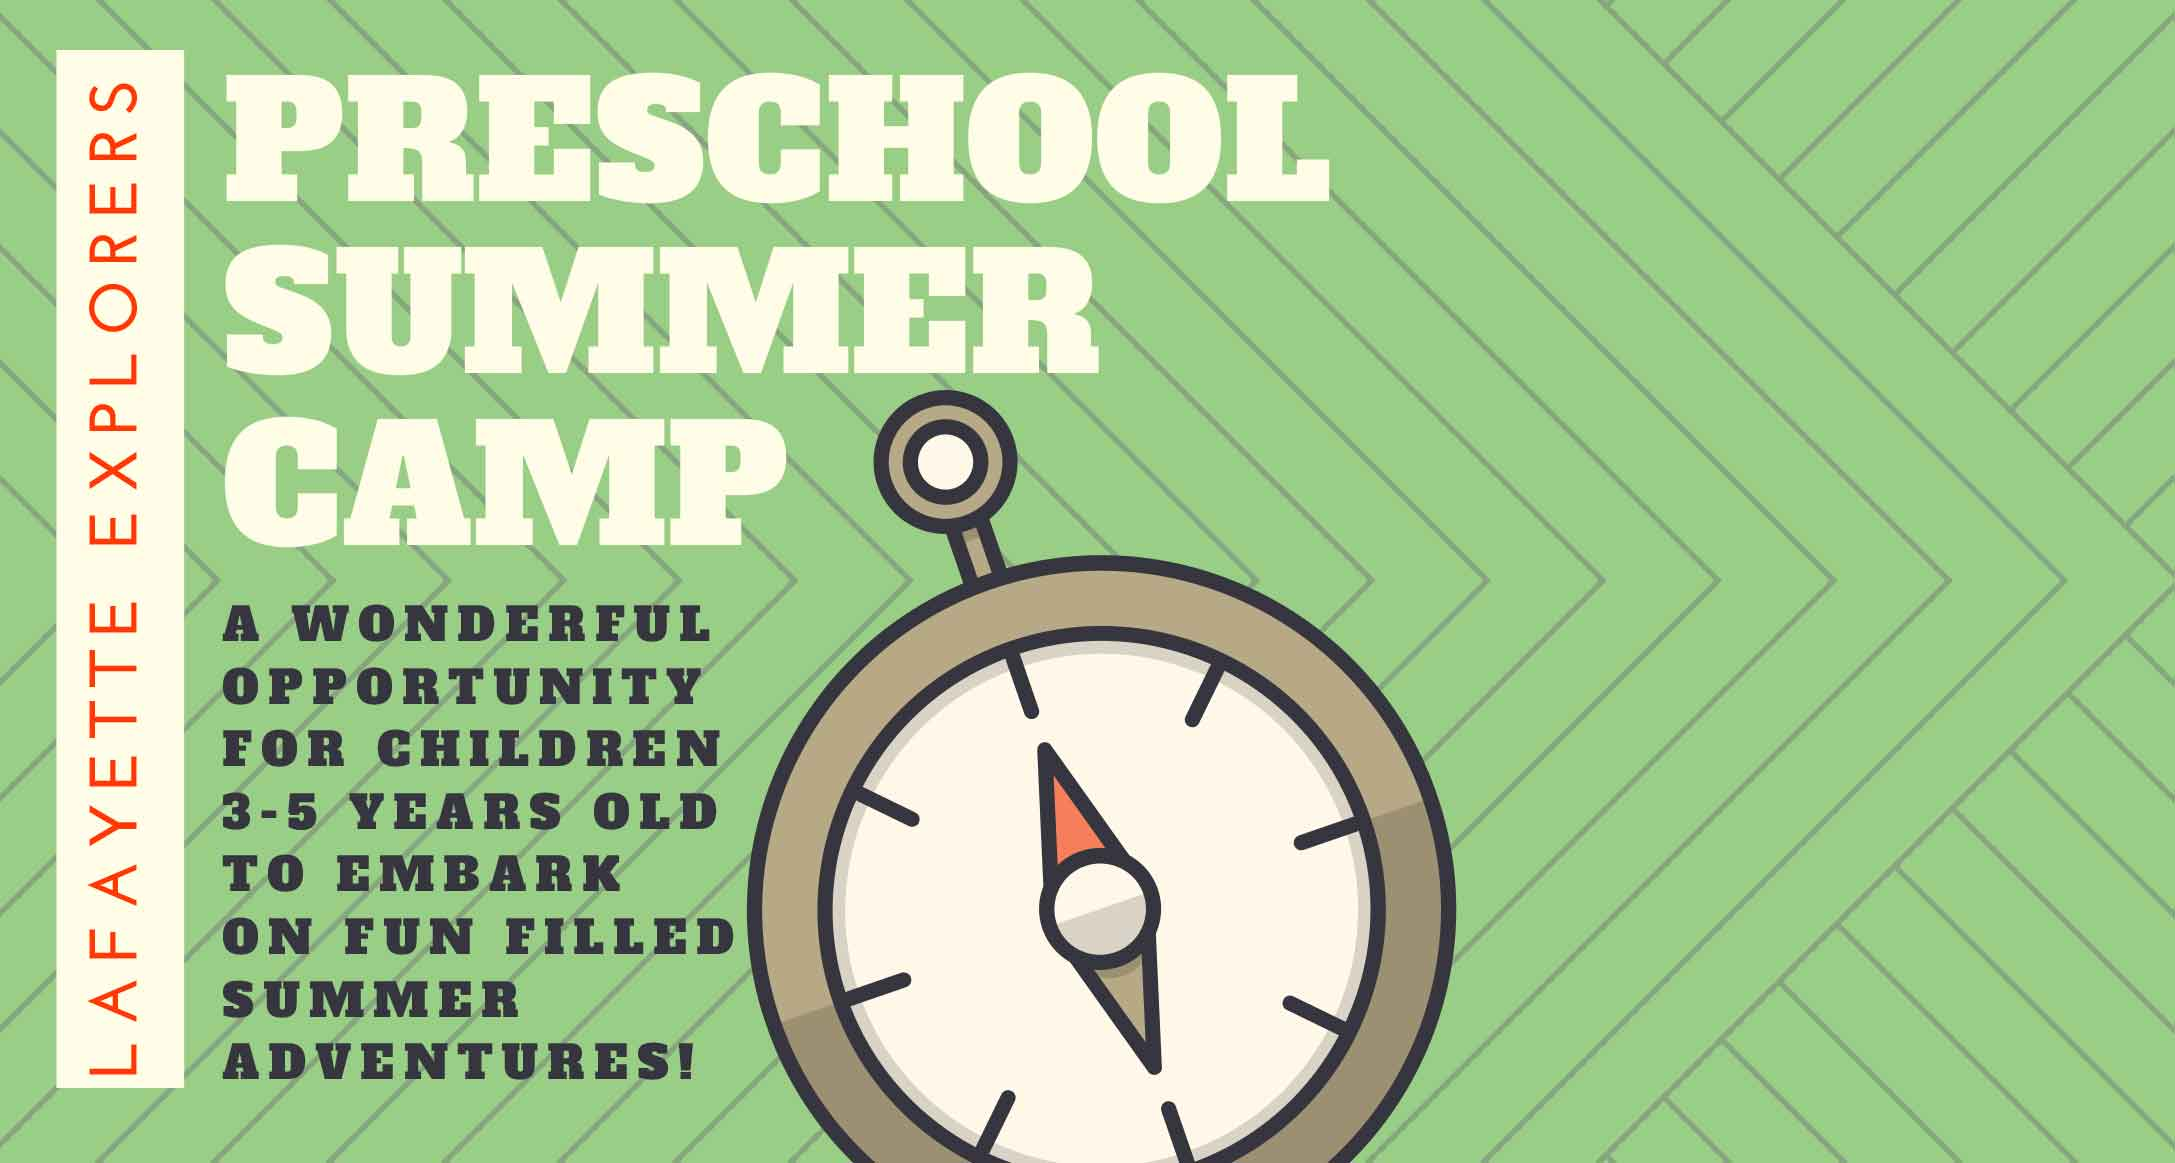 PRESCHOOL-SUMMER-C-AMP